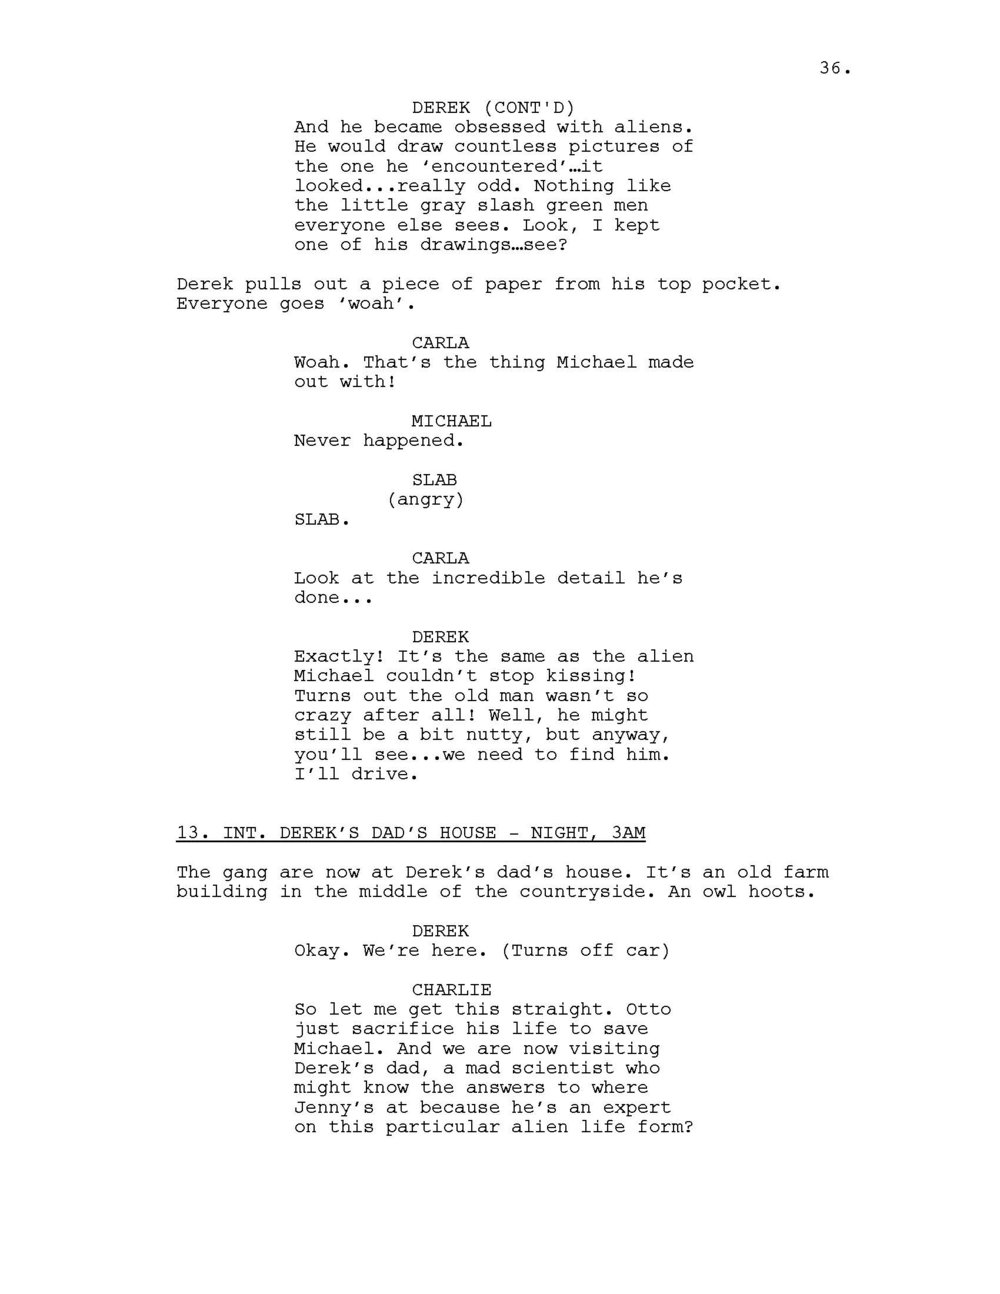 INVISIBLE WORLD SCRIPT_Page_037.jpg